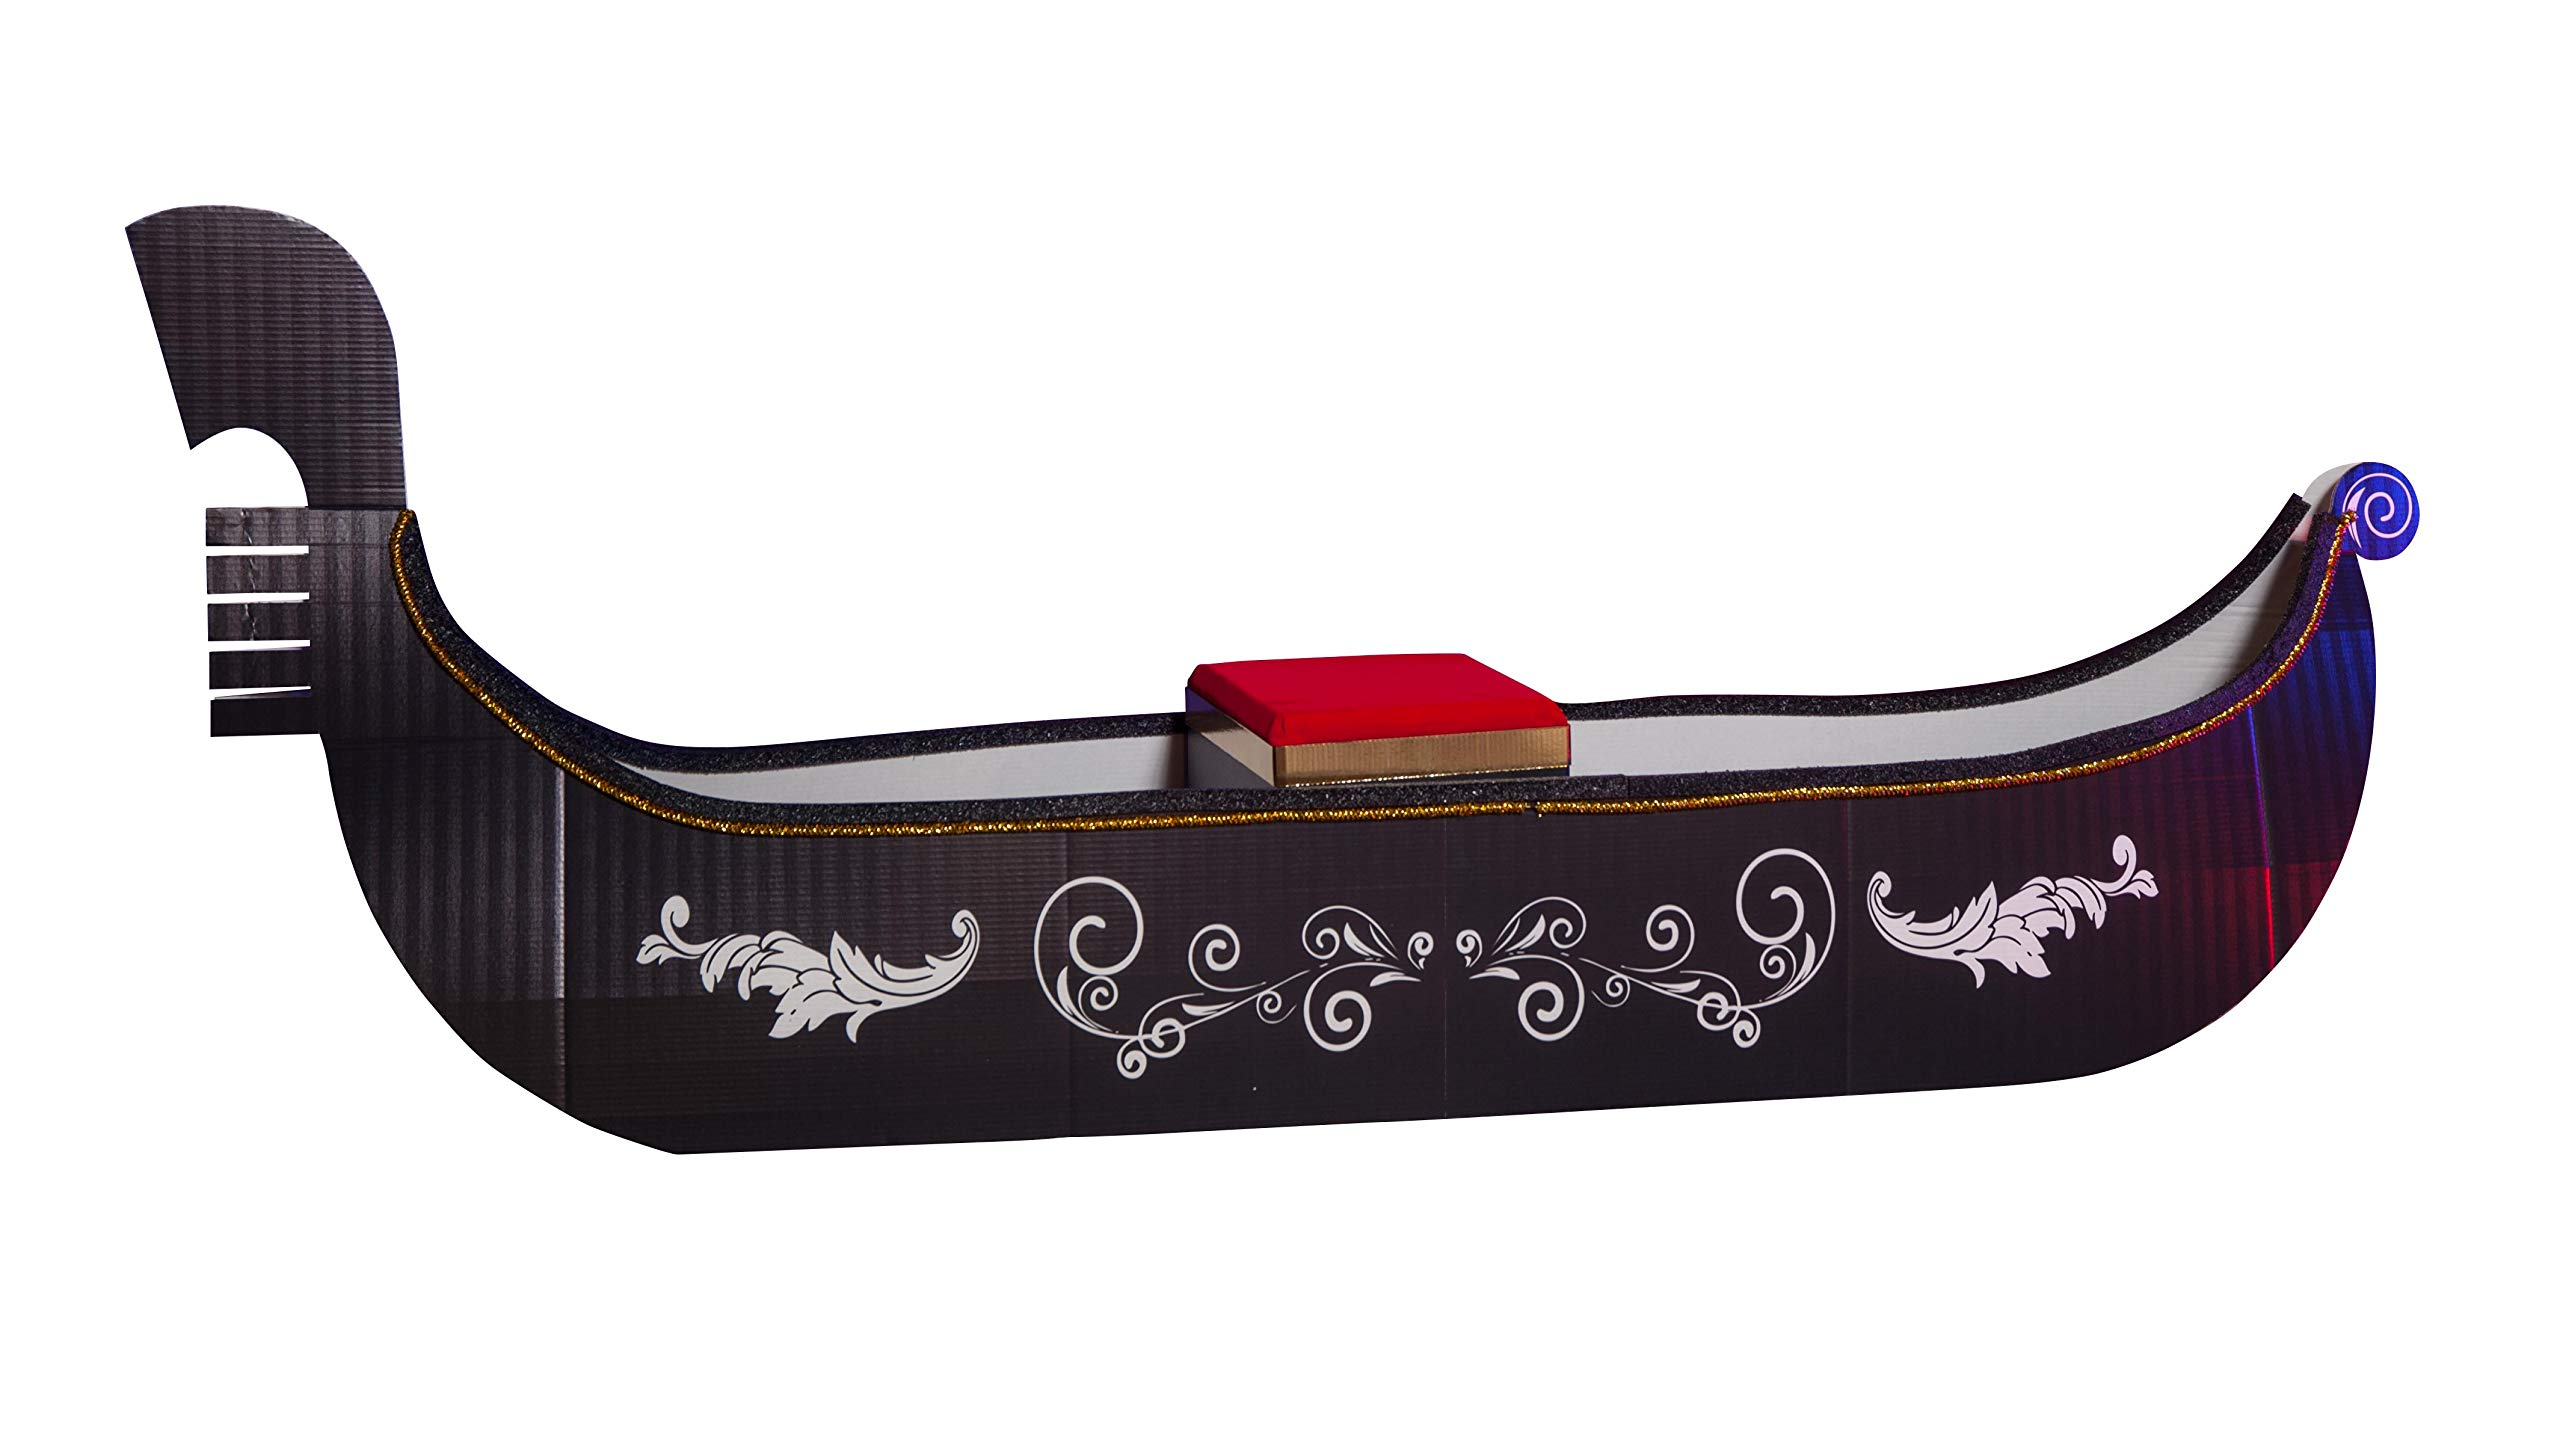 TCDesignerProducts Sturdy Gondola on Grand Canal Kit, 10 Feet 6 Inches Wide, Venetian Prom Theme Gondola Decoration Can Be Sat Upon